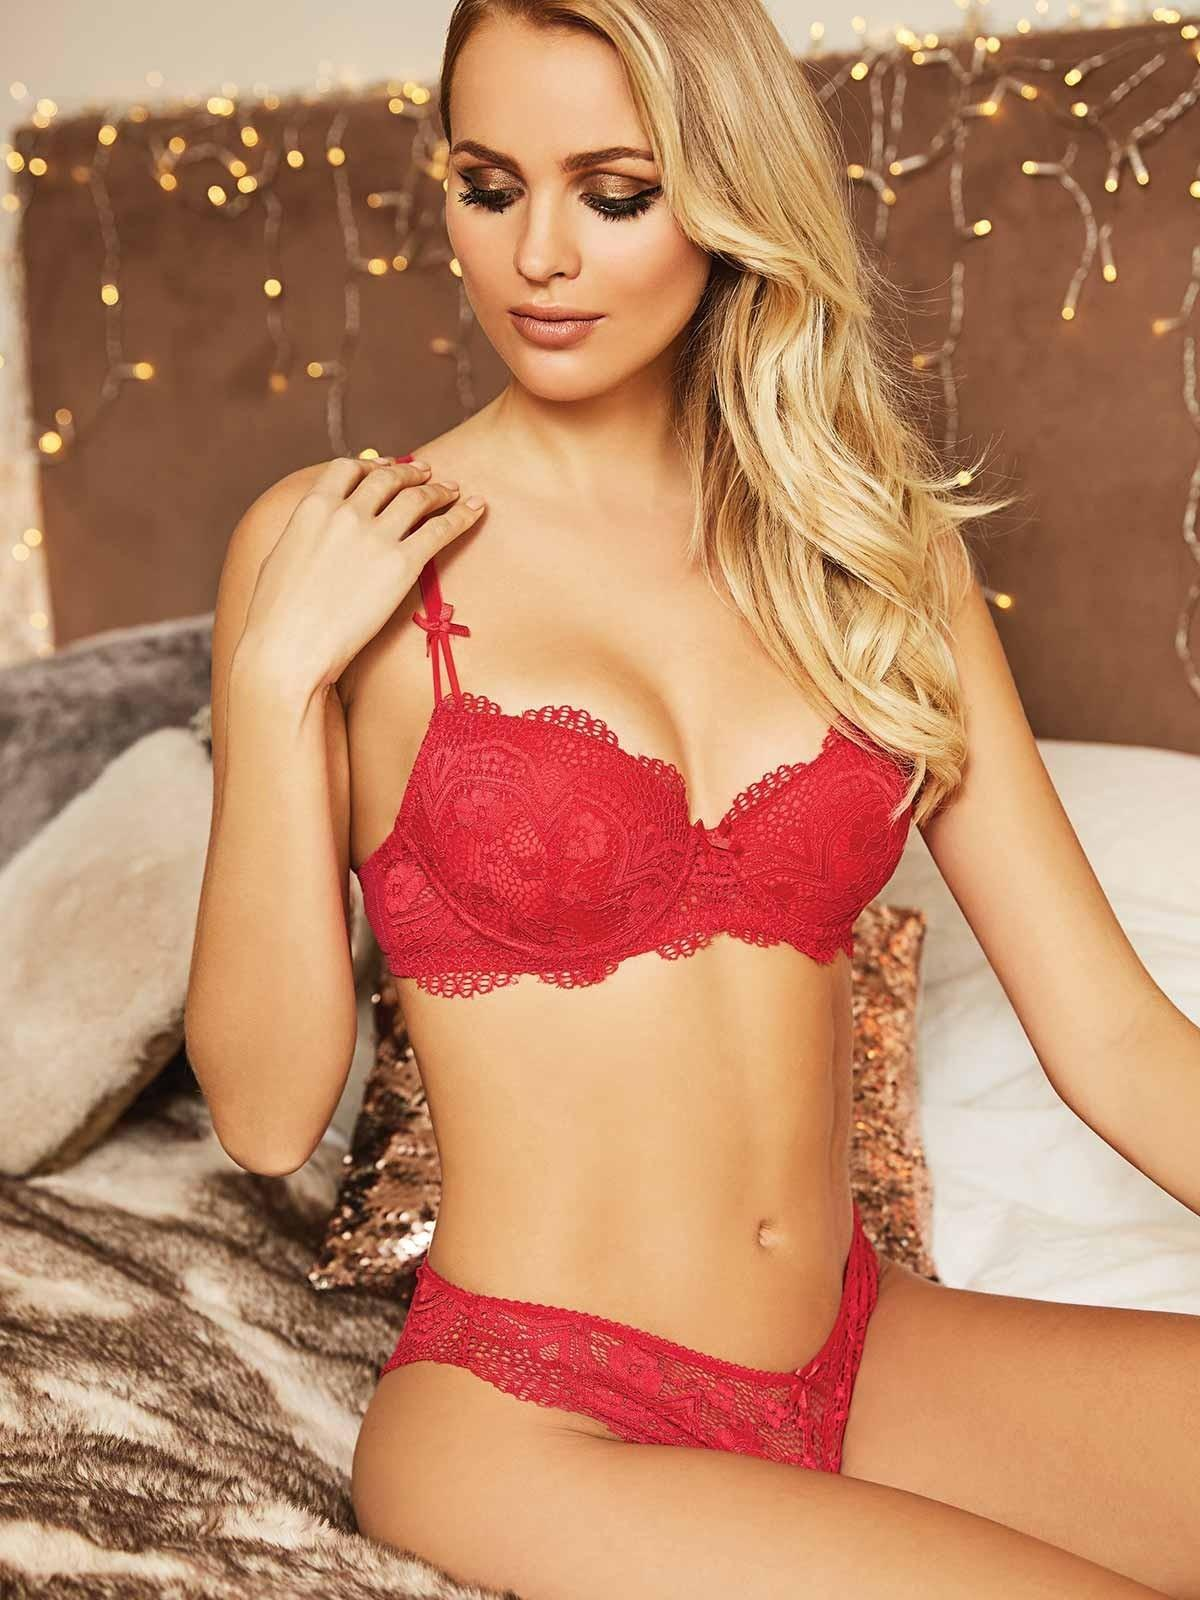 Why you should feel proud to wear sexy lingerie on Valentine's Day 2019.